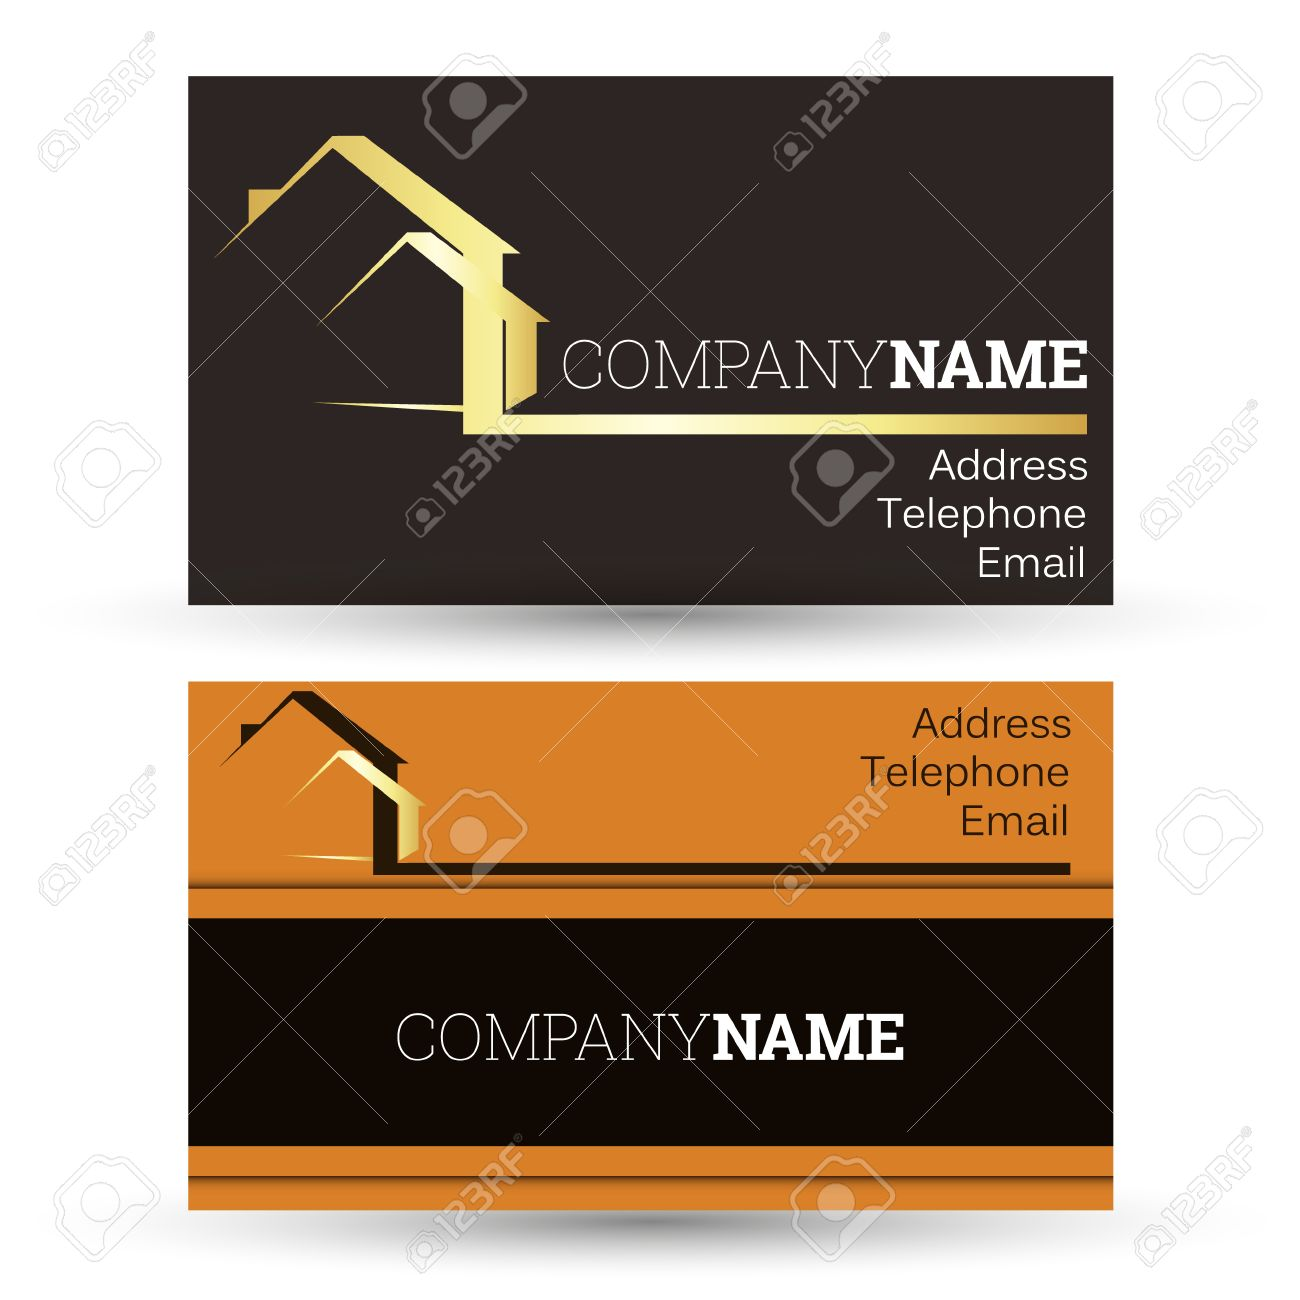 Construction business cards ideas images free business cards business cards construction images free business cards construction and sale of housing business card business royalty magicingreecefo Gallery